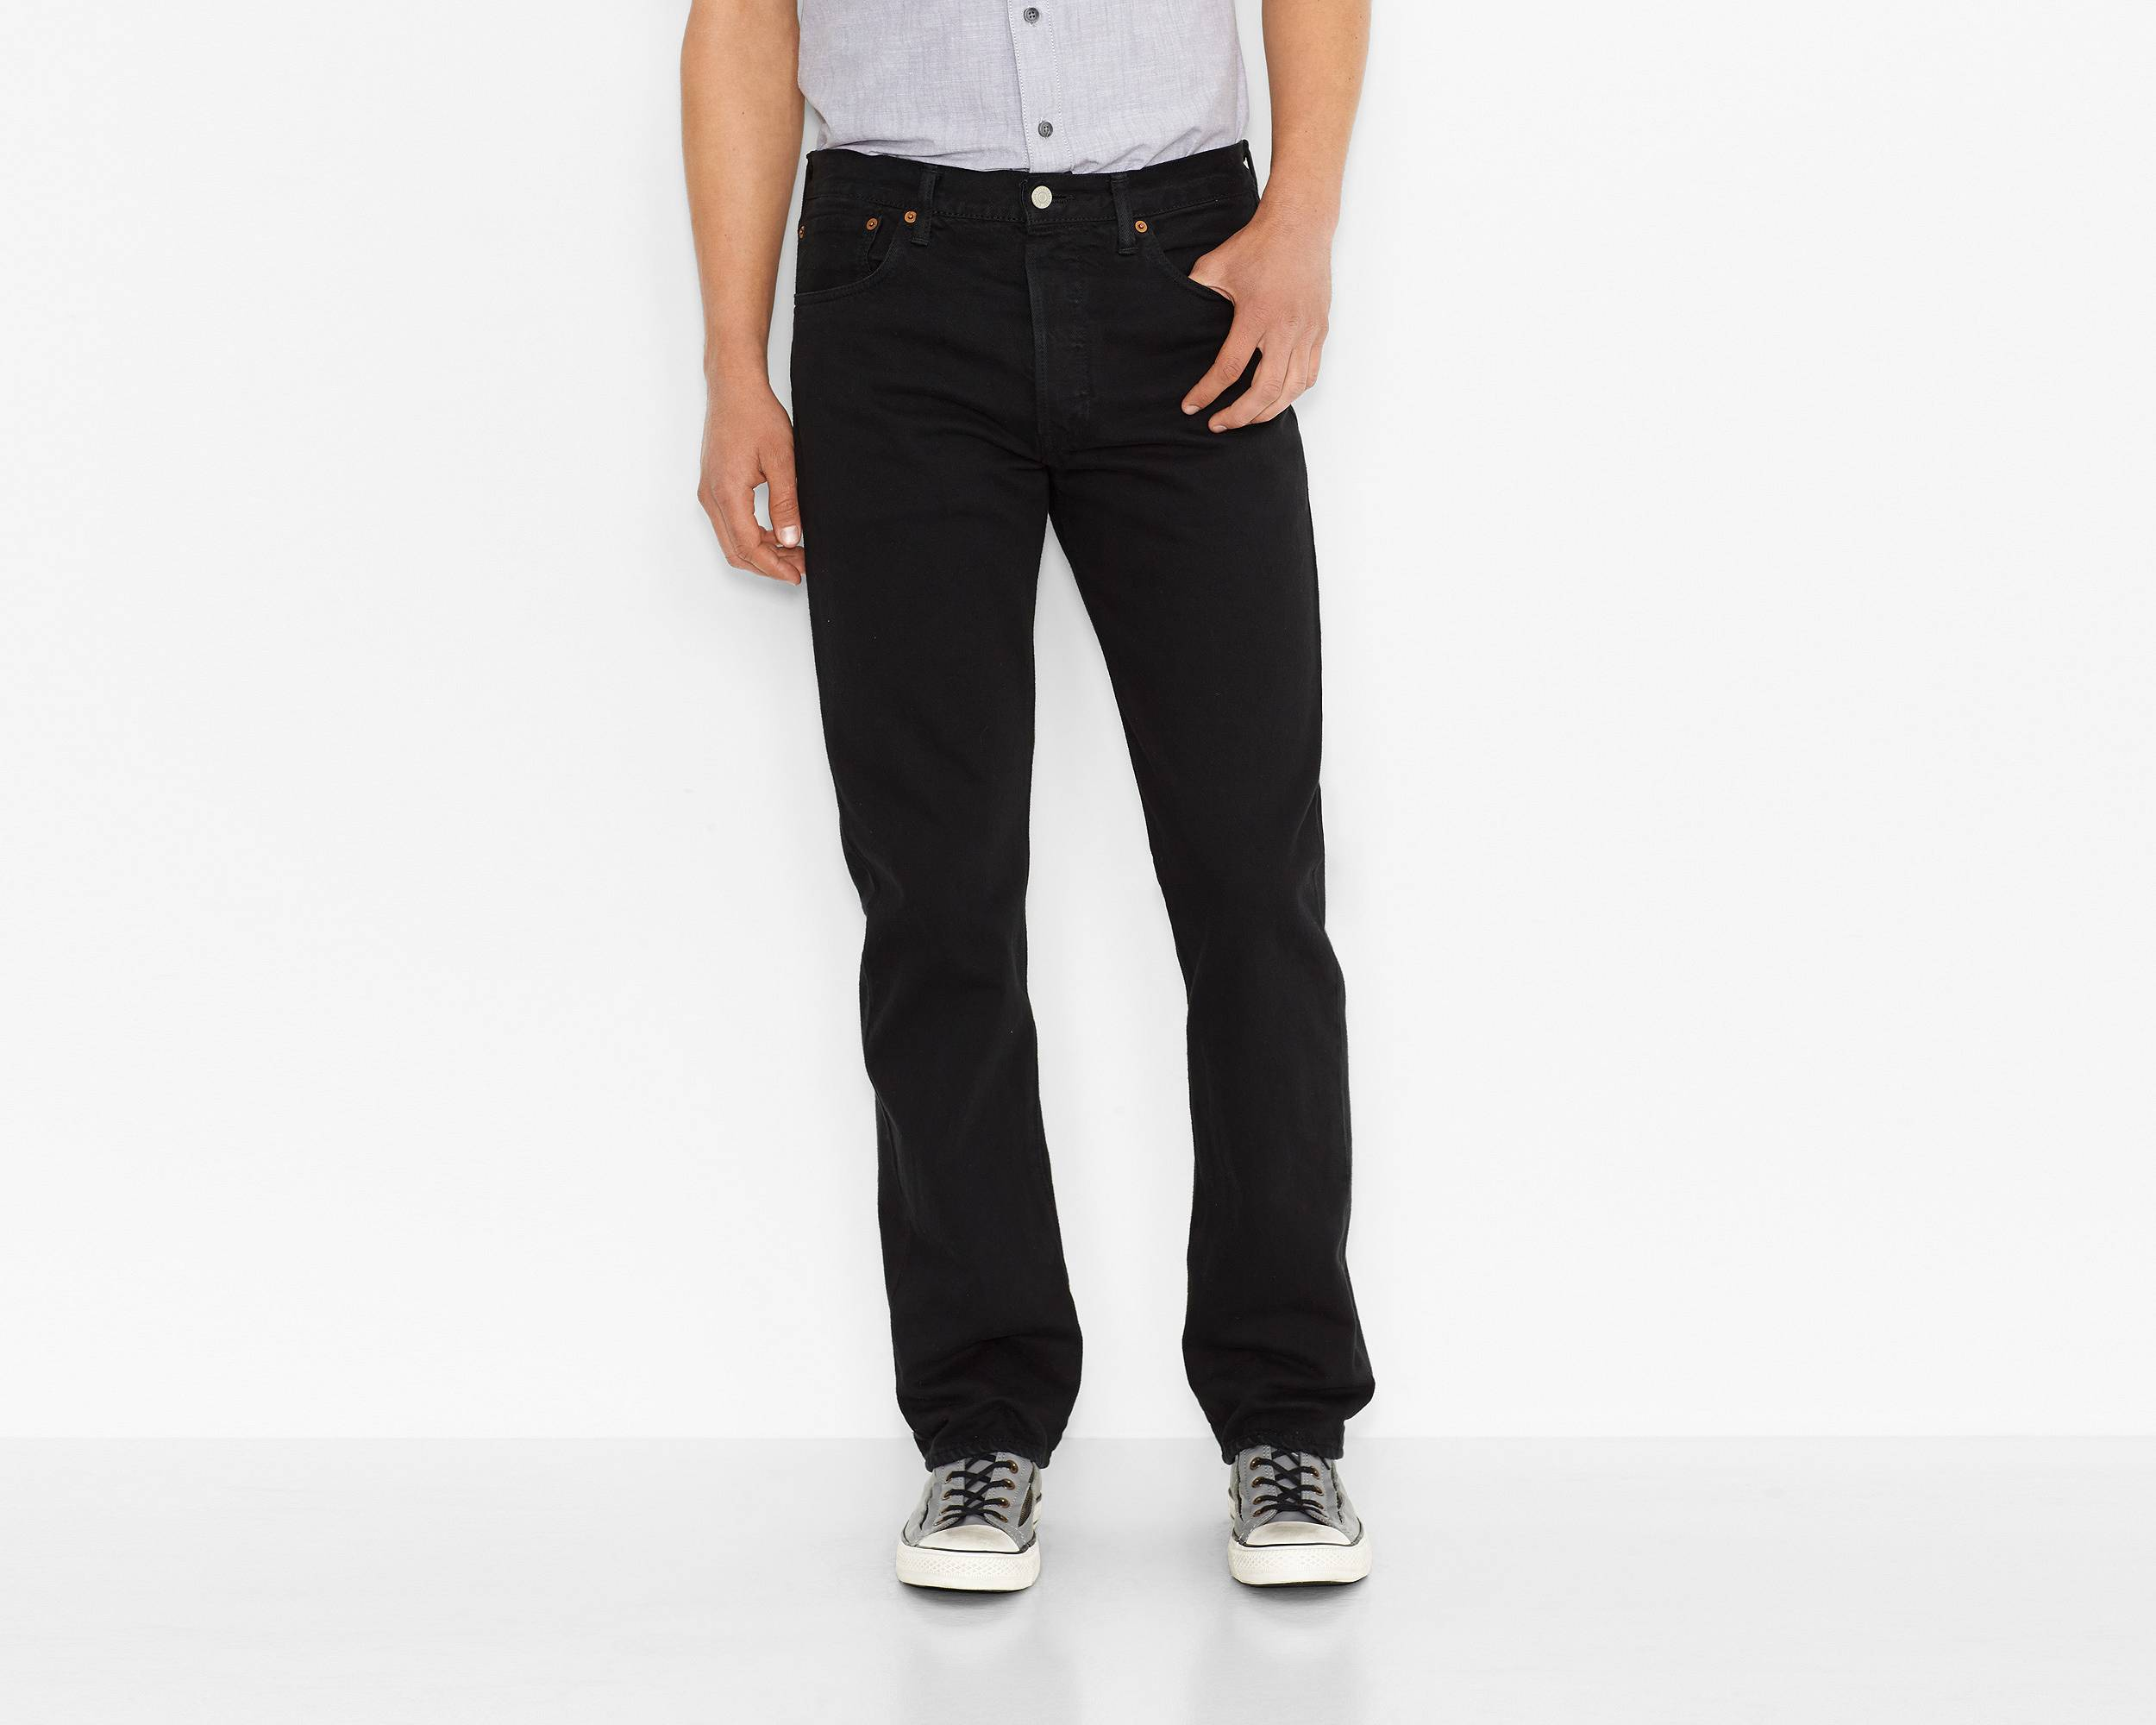 501® Original Fit Jeans | Black |Levi's® Great Britain (UK)